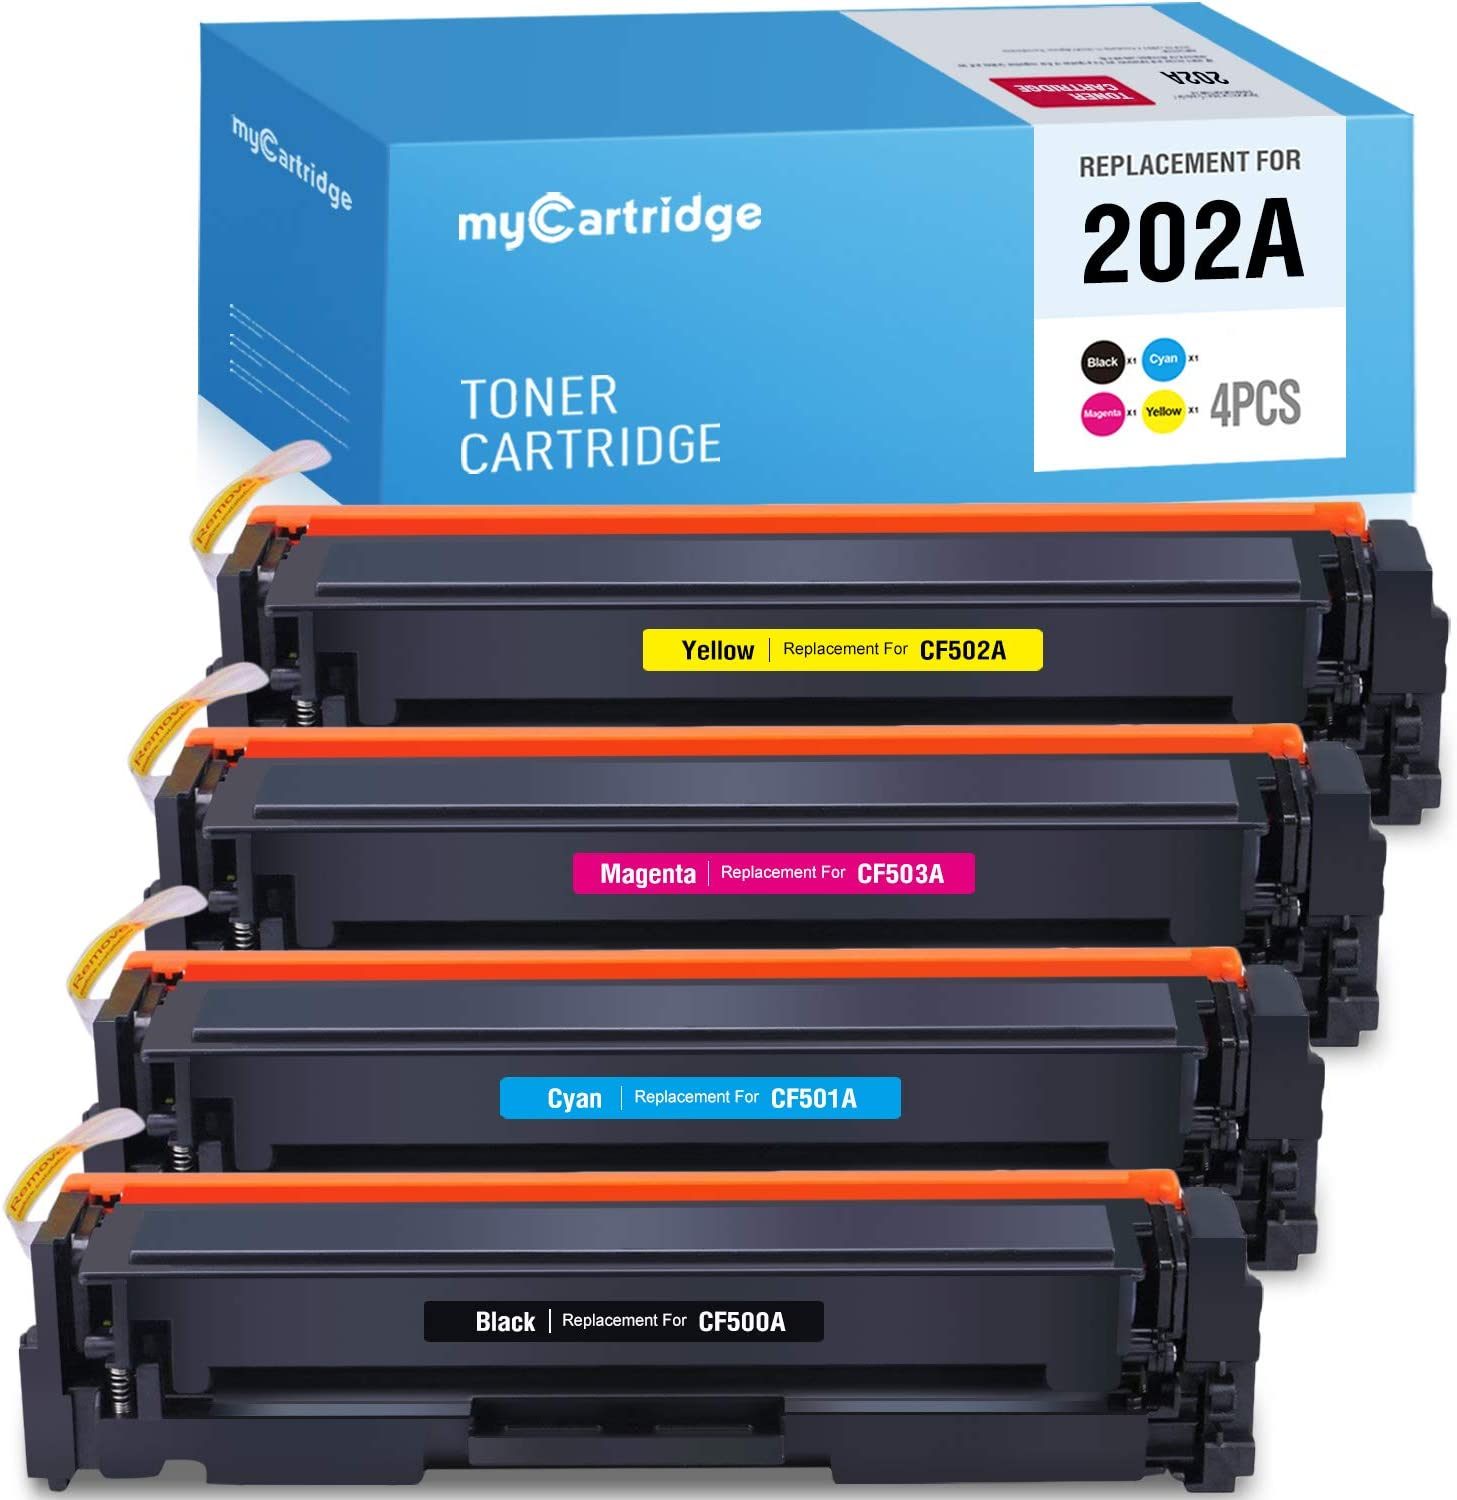 myCartridge Compatible Toner Cartridge Replacement for HP 202A CF500A CF501A CF502A CF503A (1BK 1C 1Y 1M, 4PK) Fit for HP Color Laserjet Pro MFP M281fdw M281cdw M281dw M280 M254